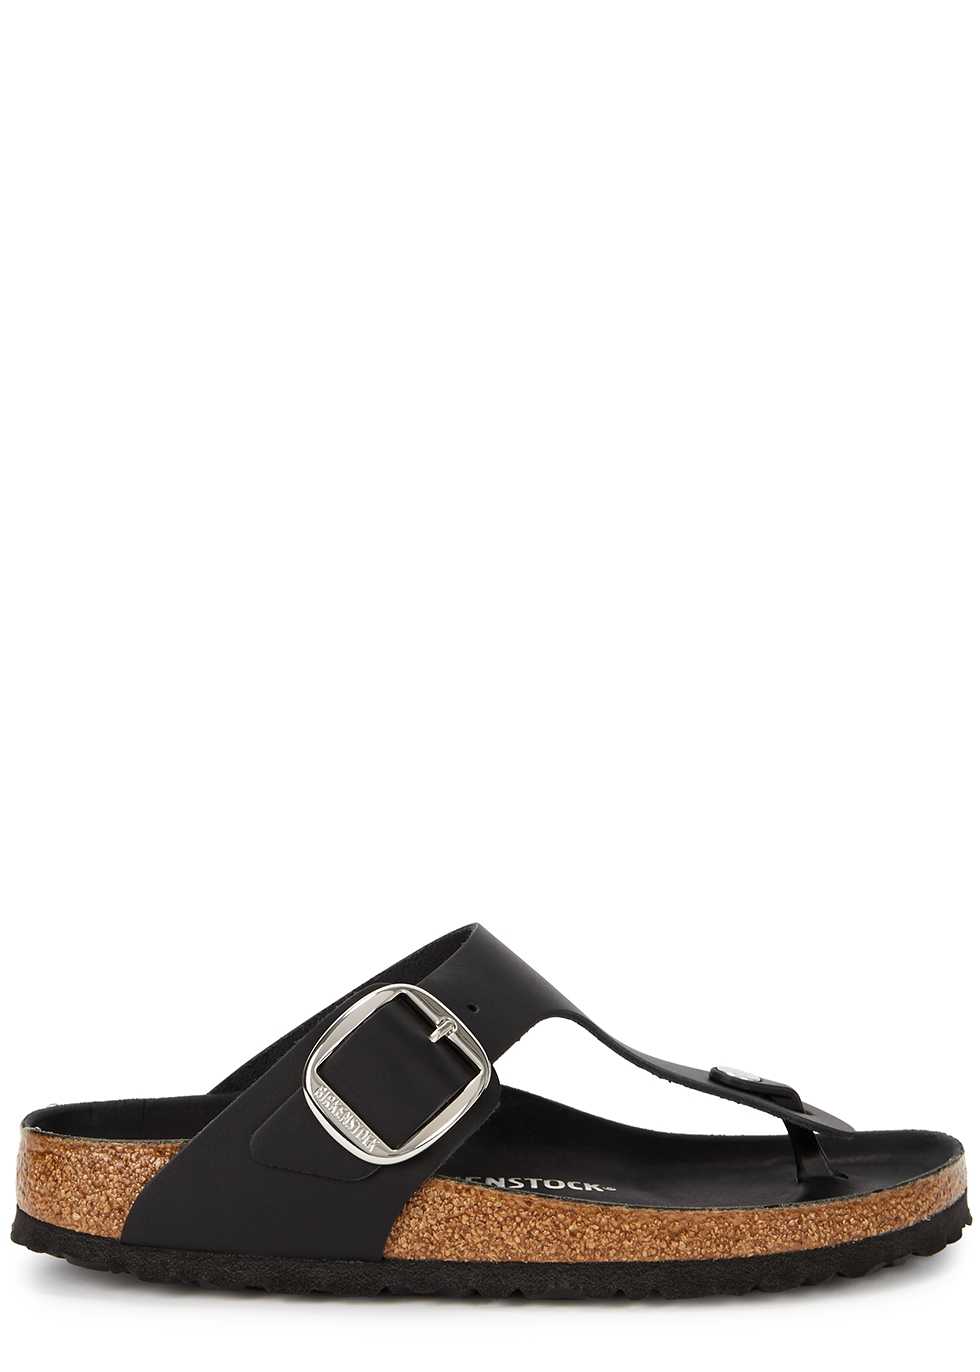 Gizah black leather thong sandals